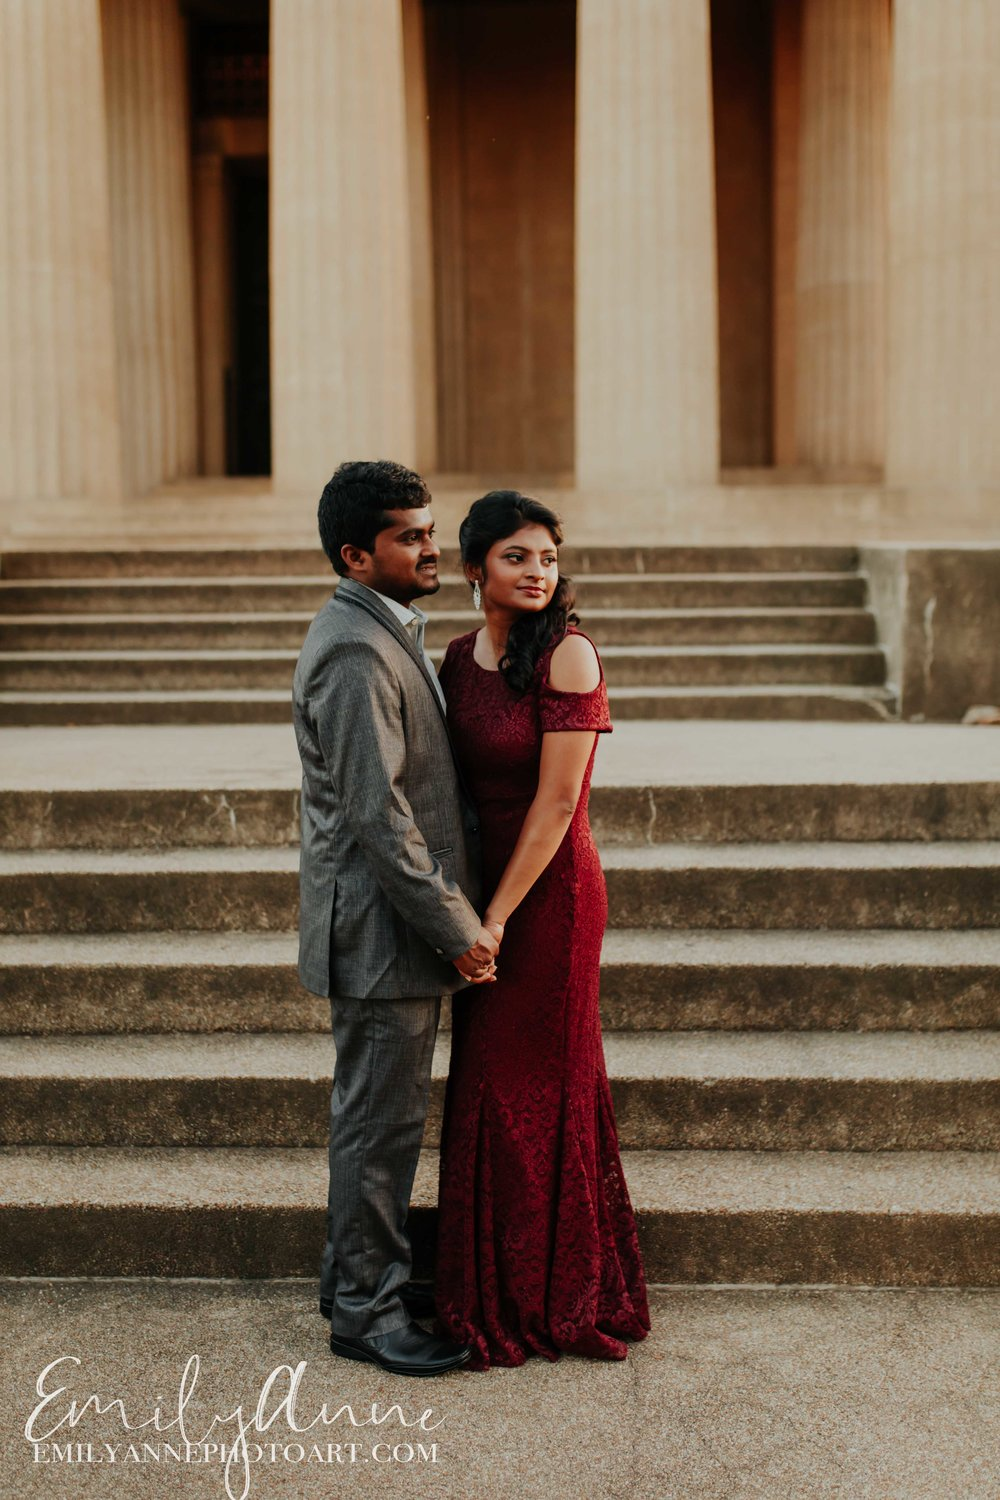 the top indian wedding and engagement photographer kerala in Nashville TN Birmingham and Atlanta Franklin TN emily anne photo art